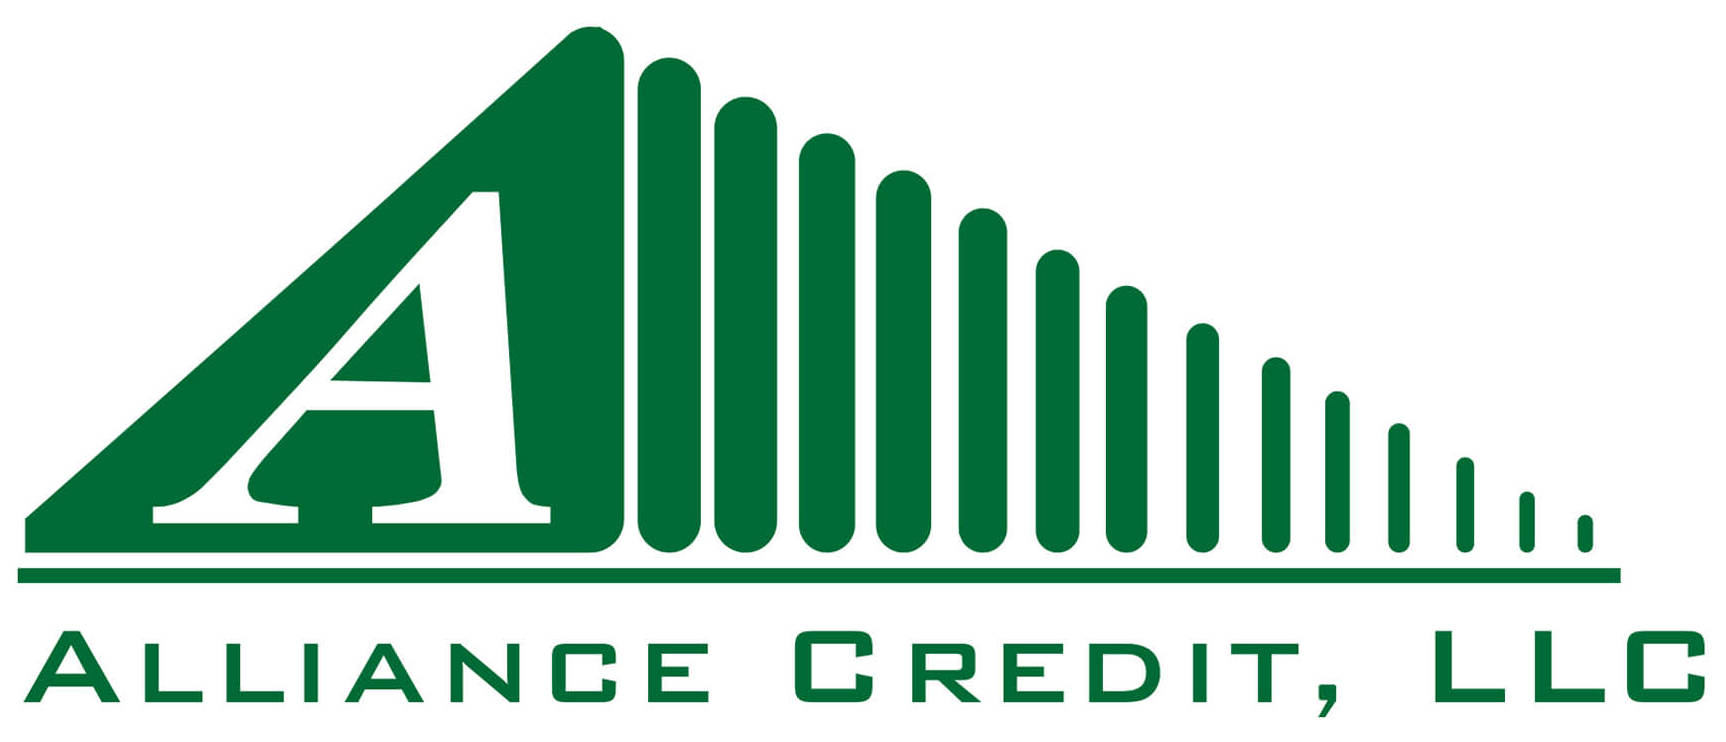 Alliance Credit, LLC